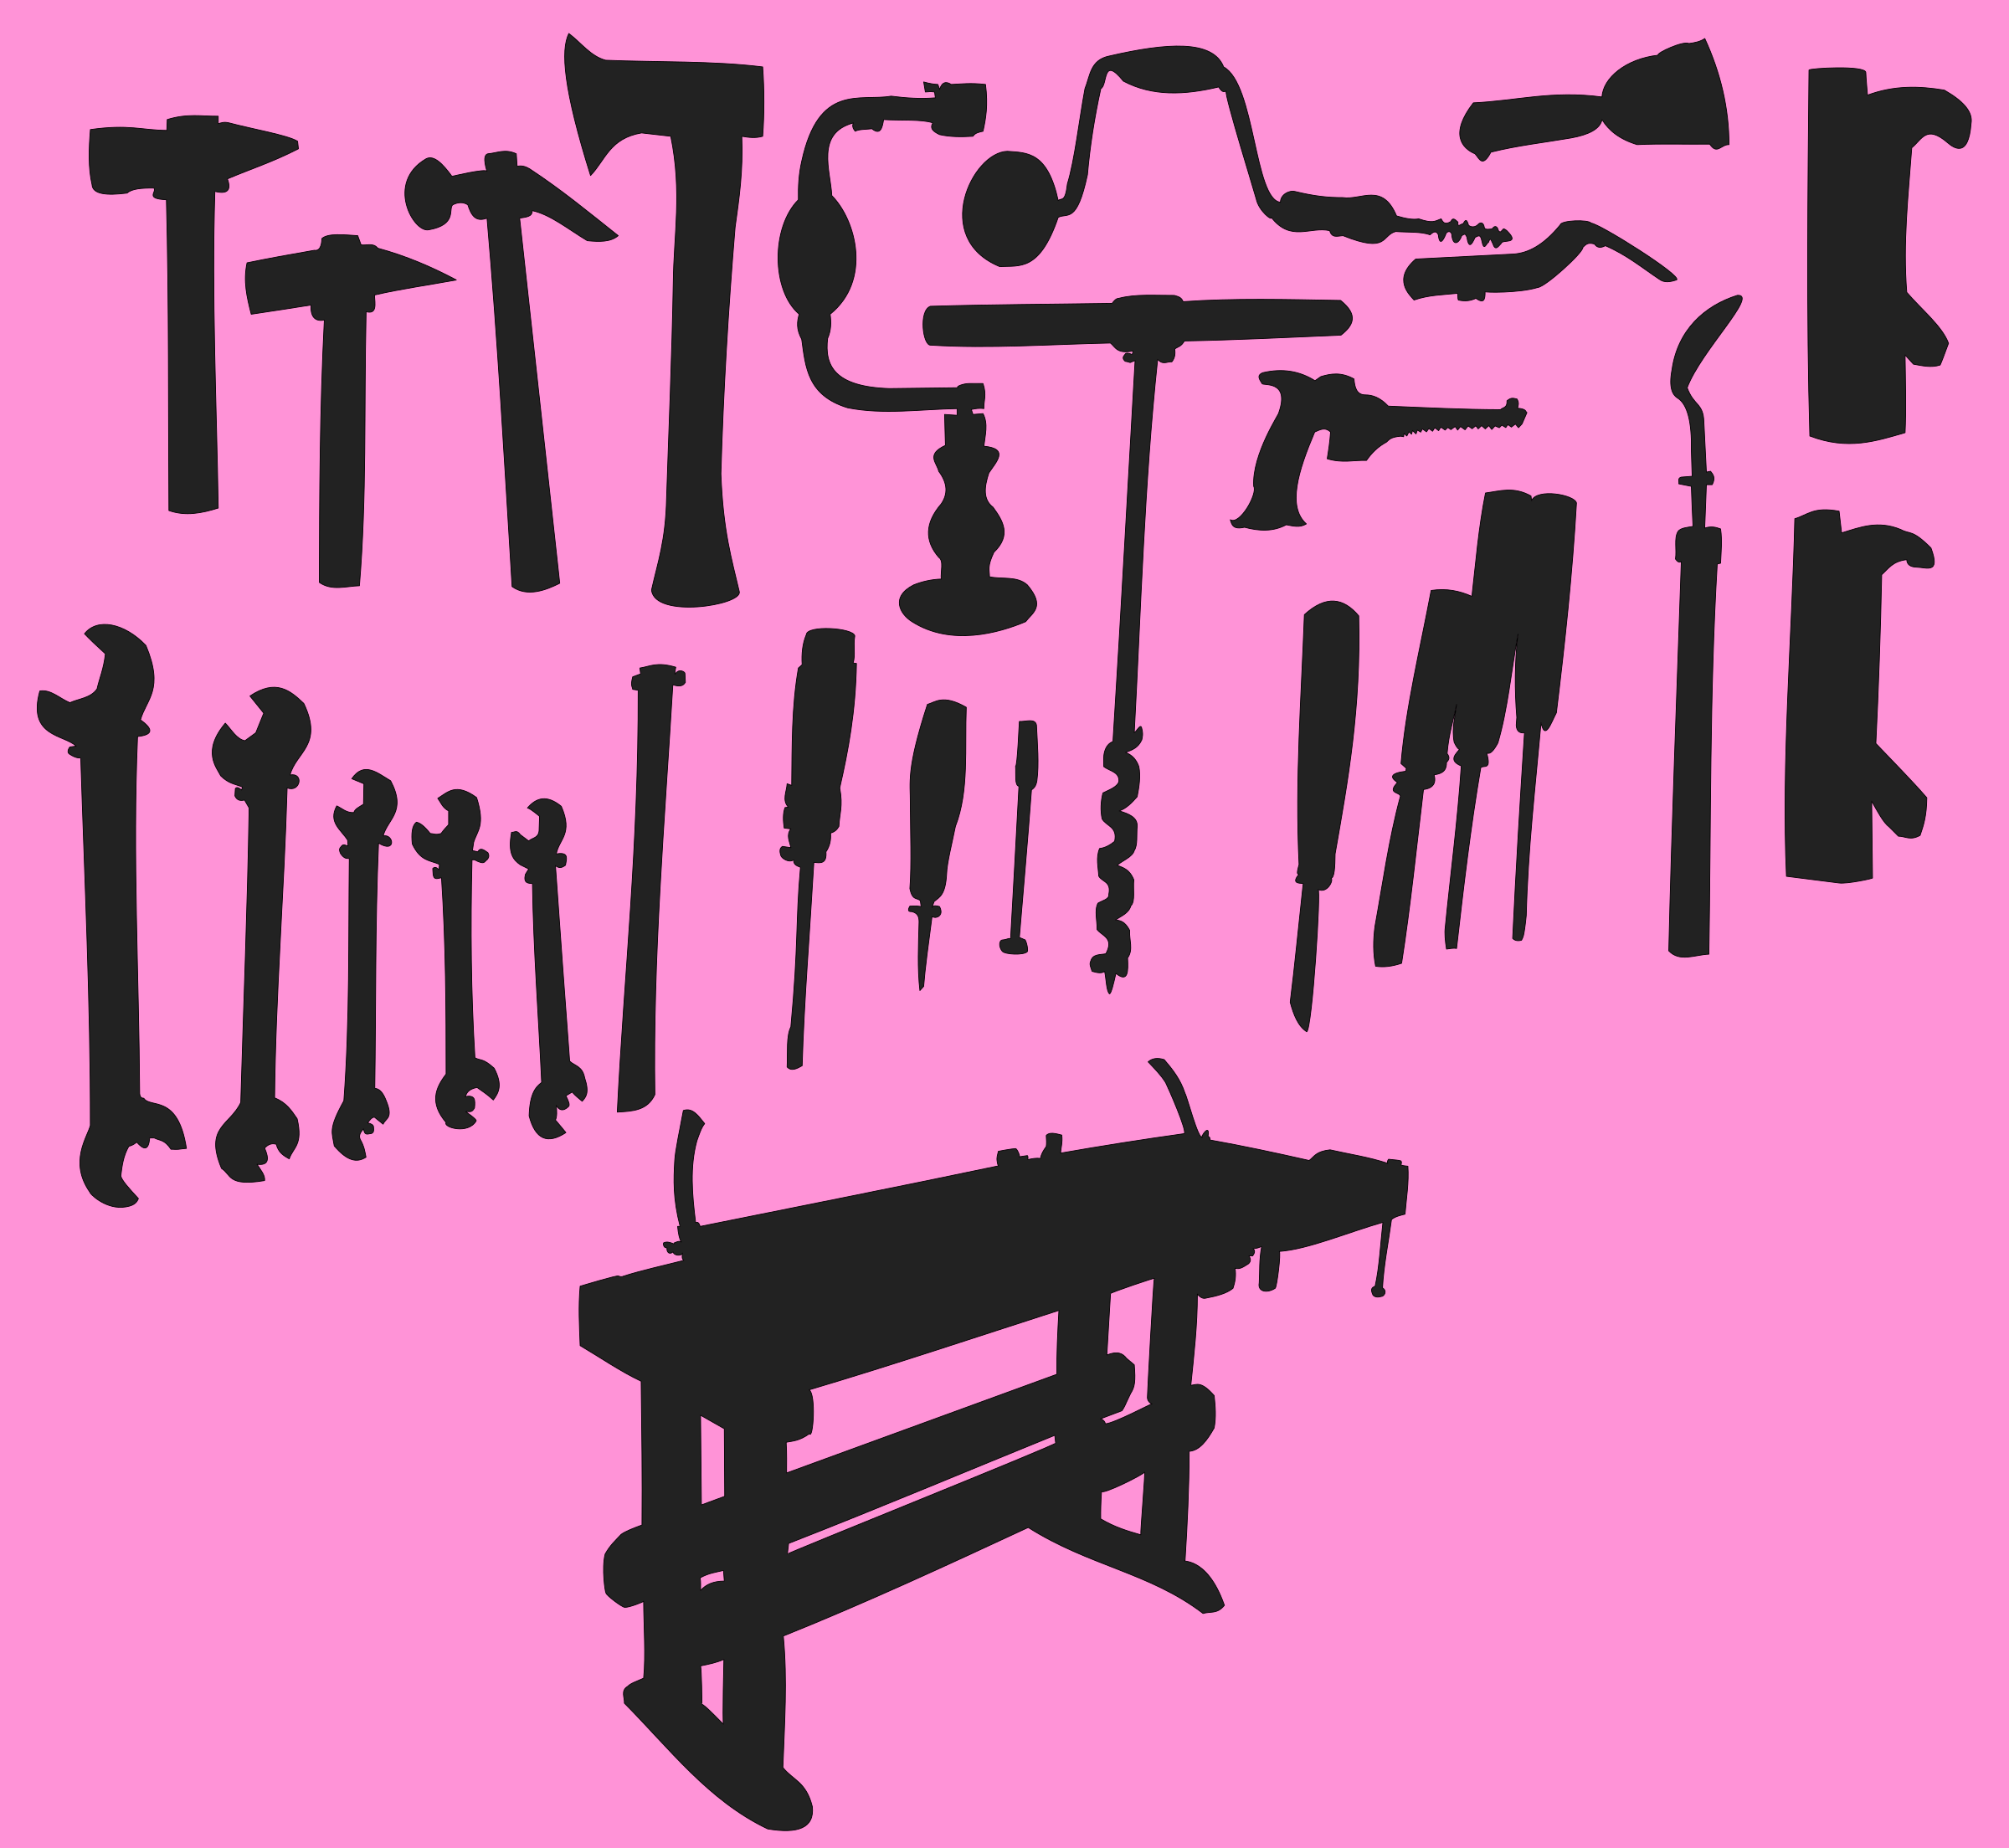 Tools and workbench silhouette by anarres